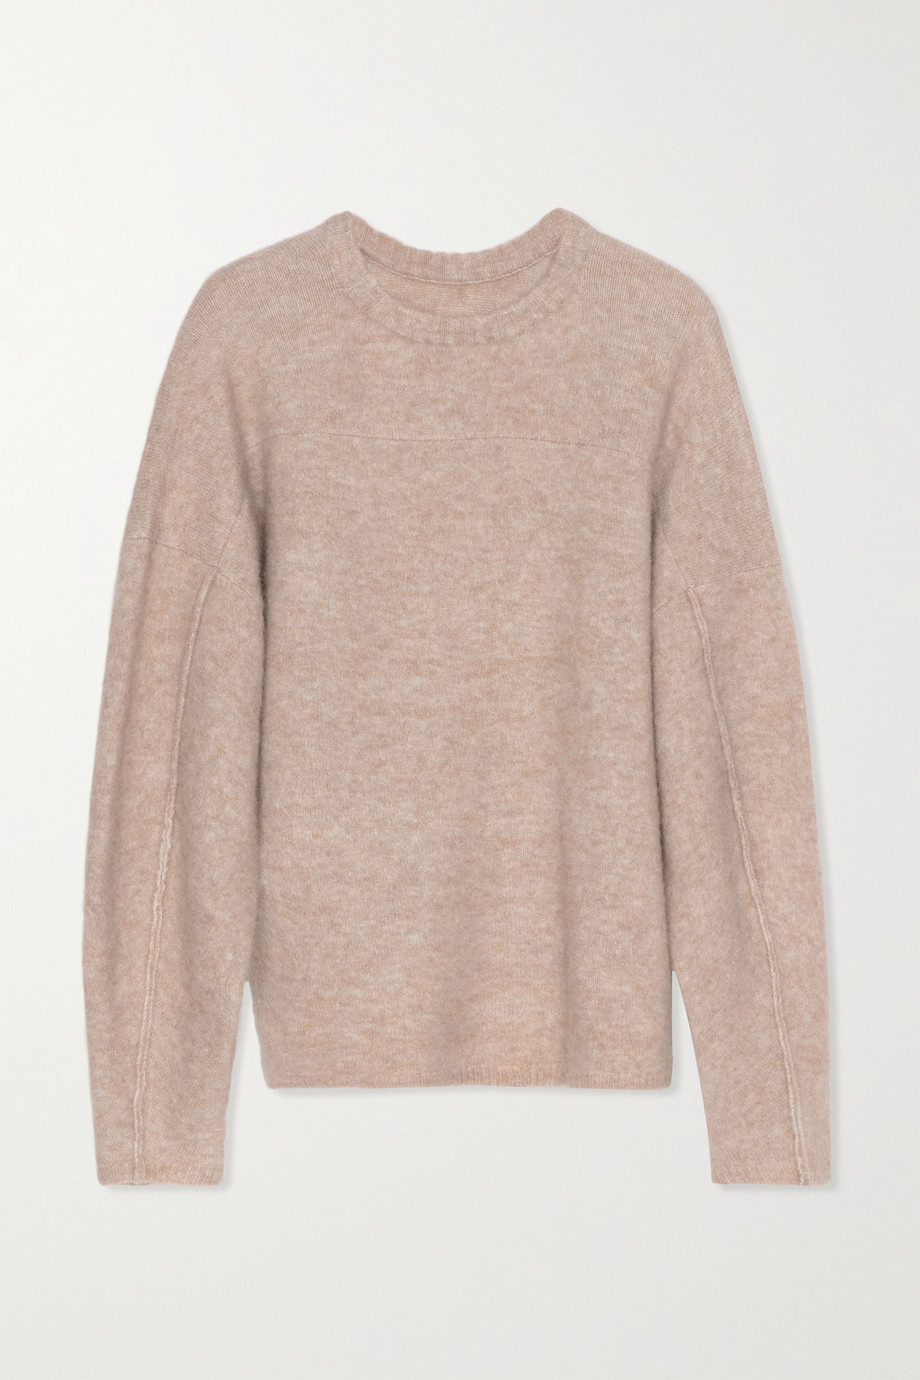 3.1 Phillip Lim Mélange knitted sweater